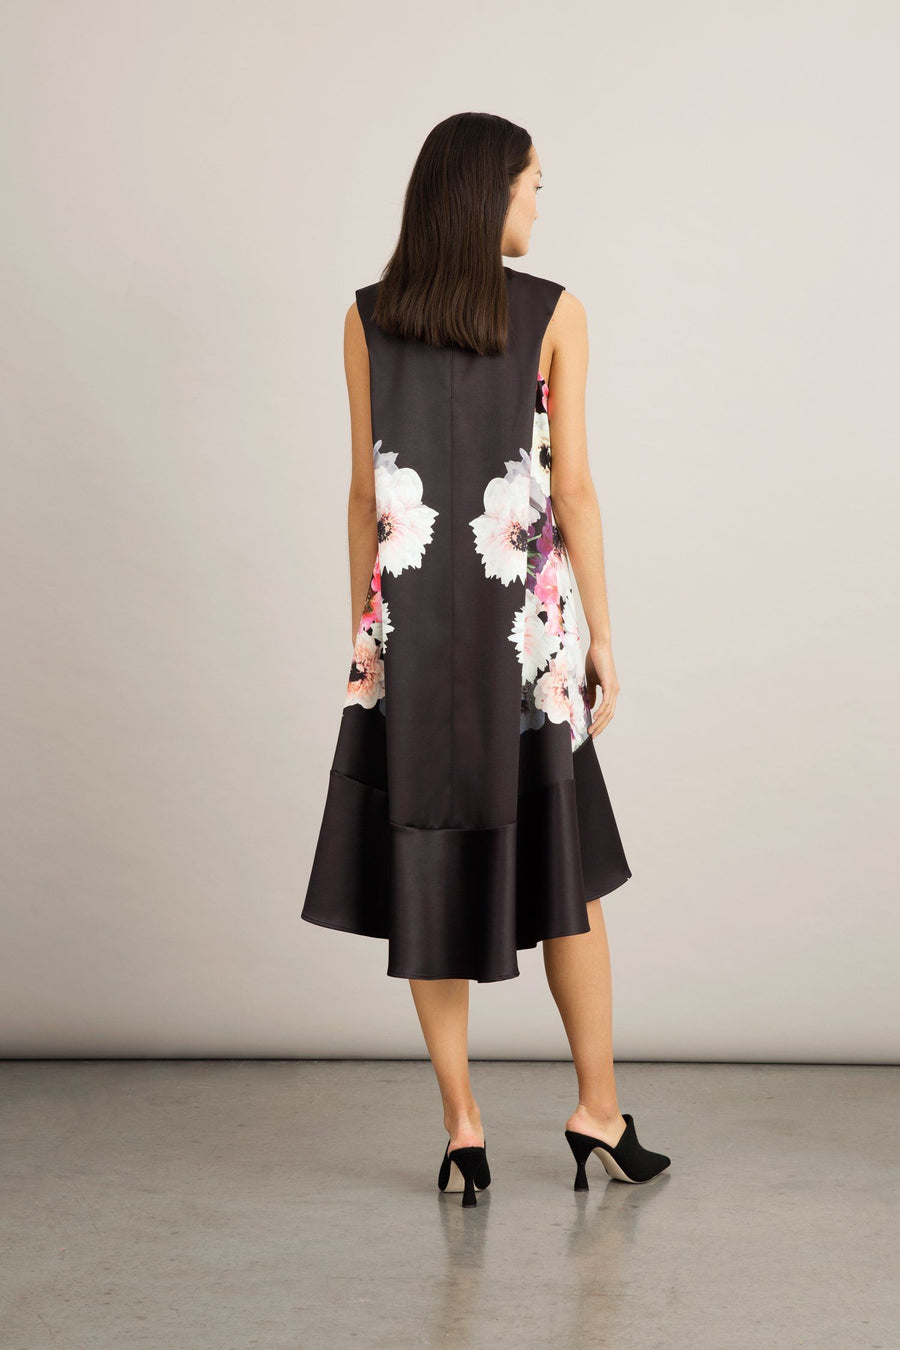 BRESSO DRESS - FLOWER Dress Stylein